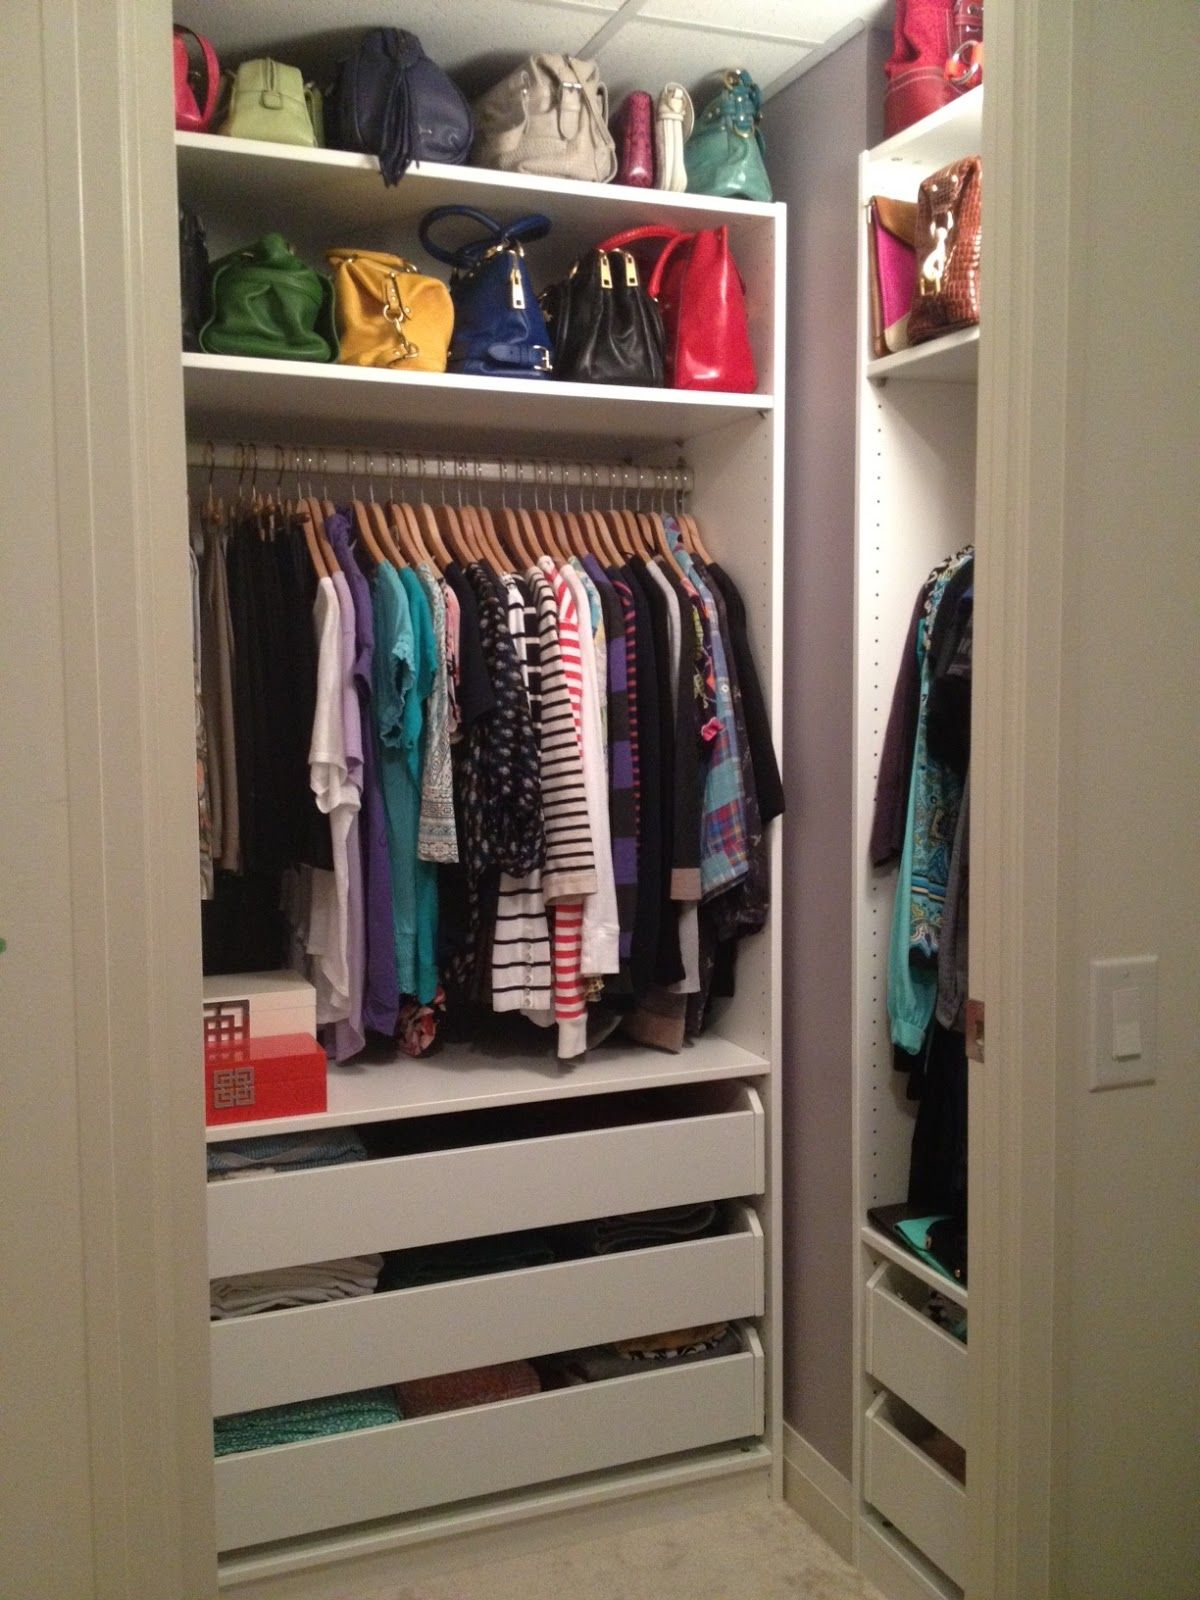 Fascinating ikea closet systems planner roselawnlutheran for Ikea diy closet